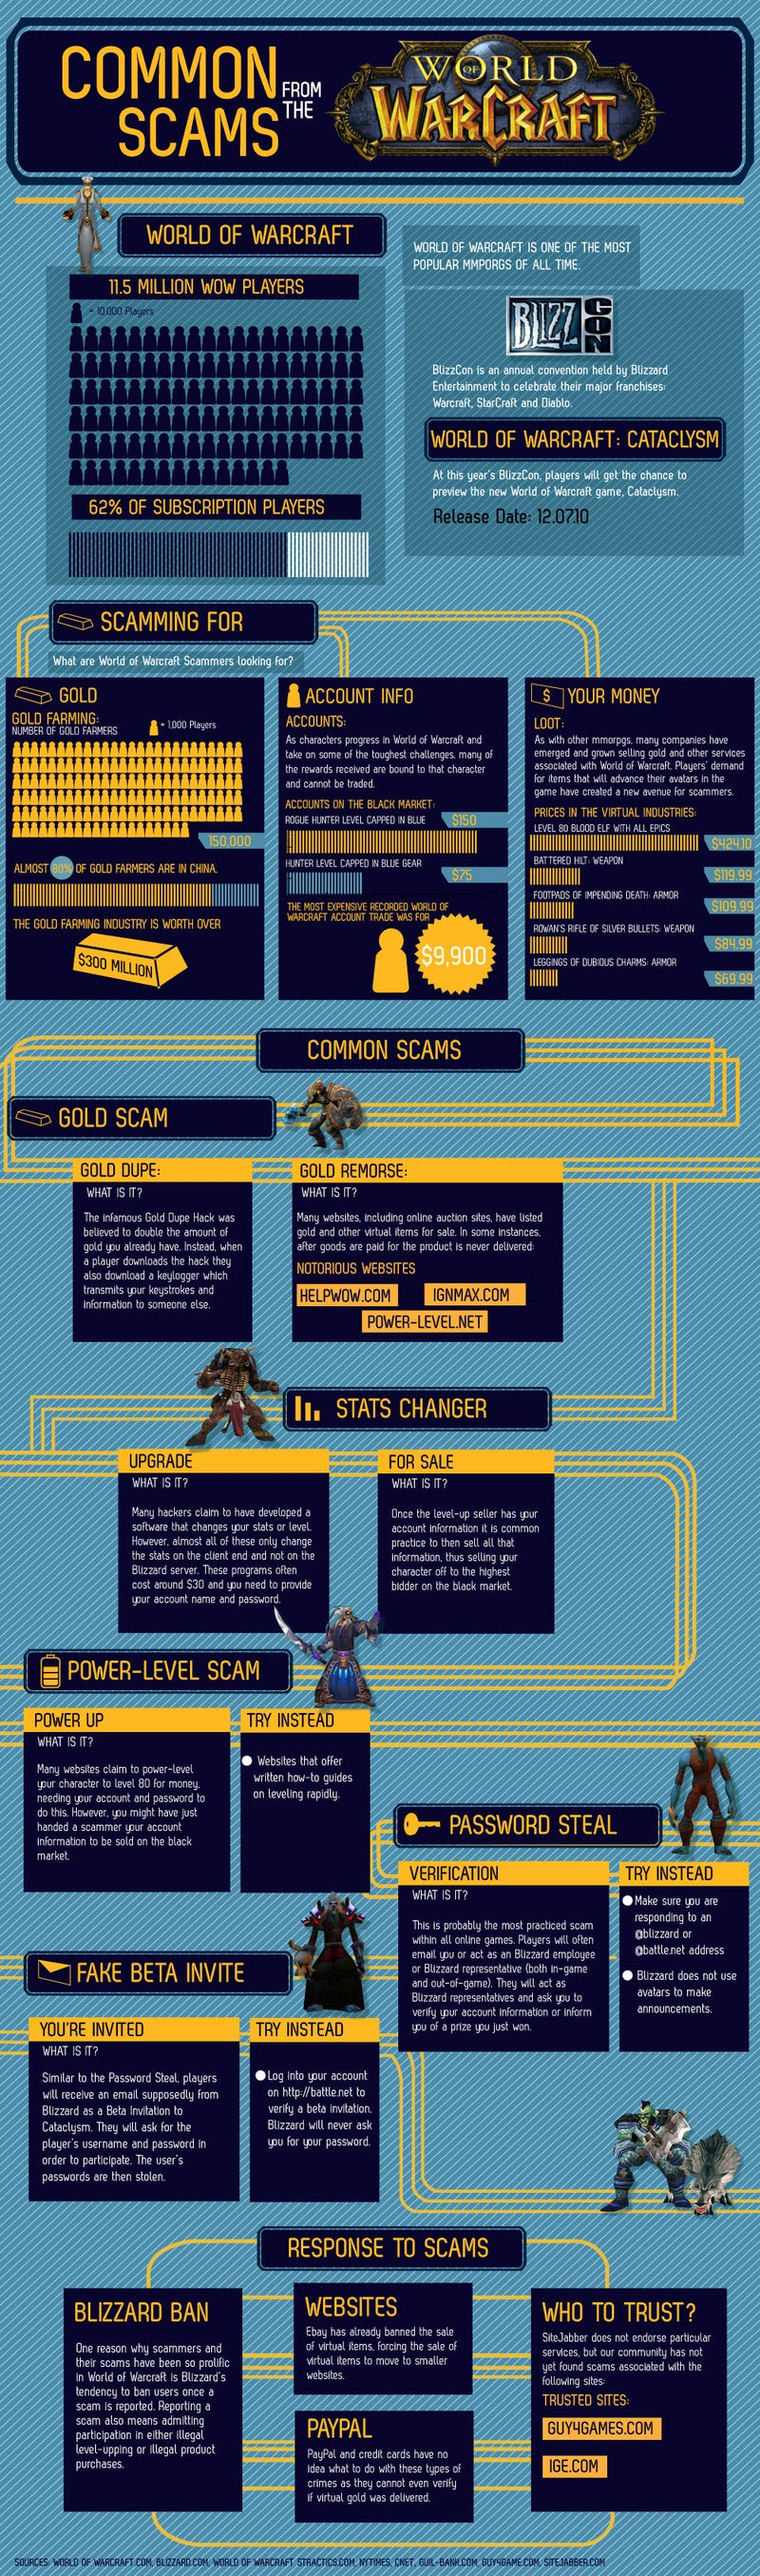 An Illustrated Guide To World Of Warcraft's Scammers